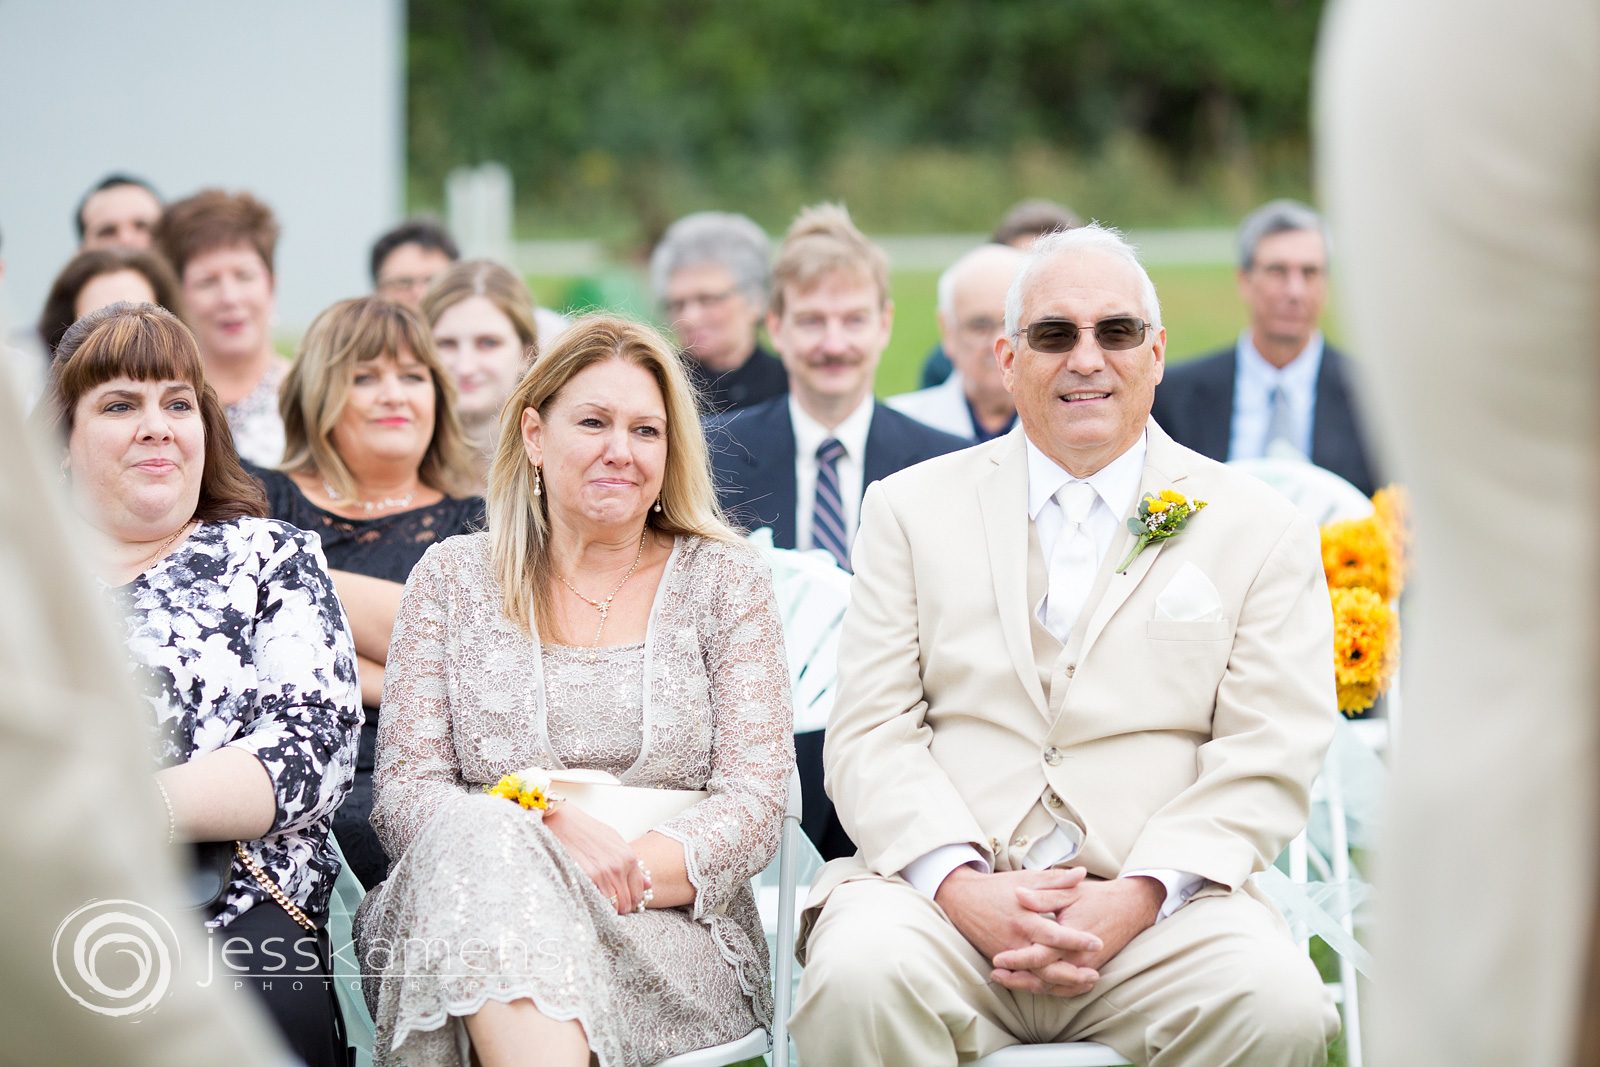 parents of the newlyweds watch the wedding